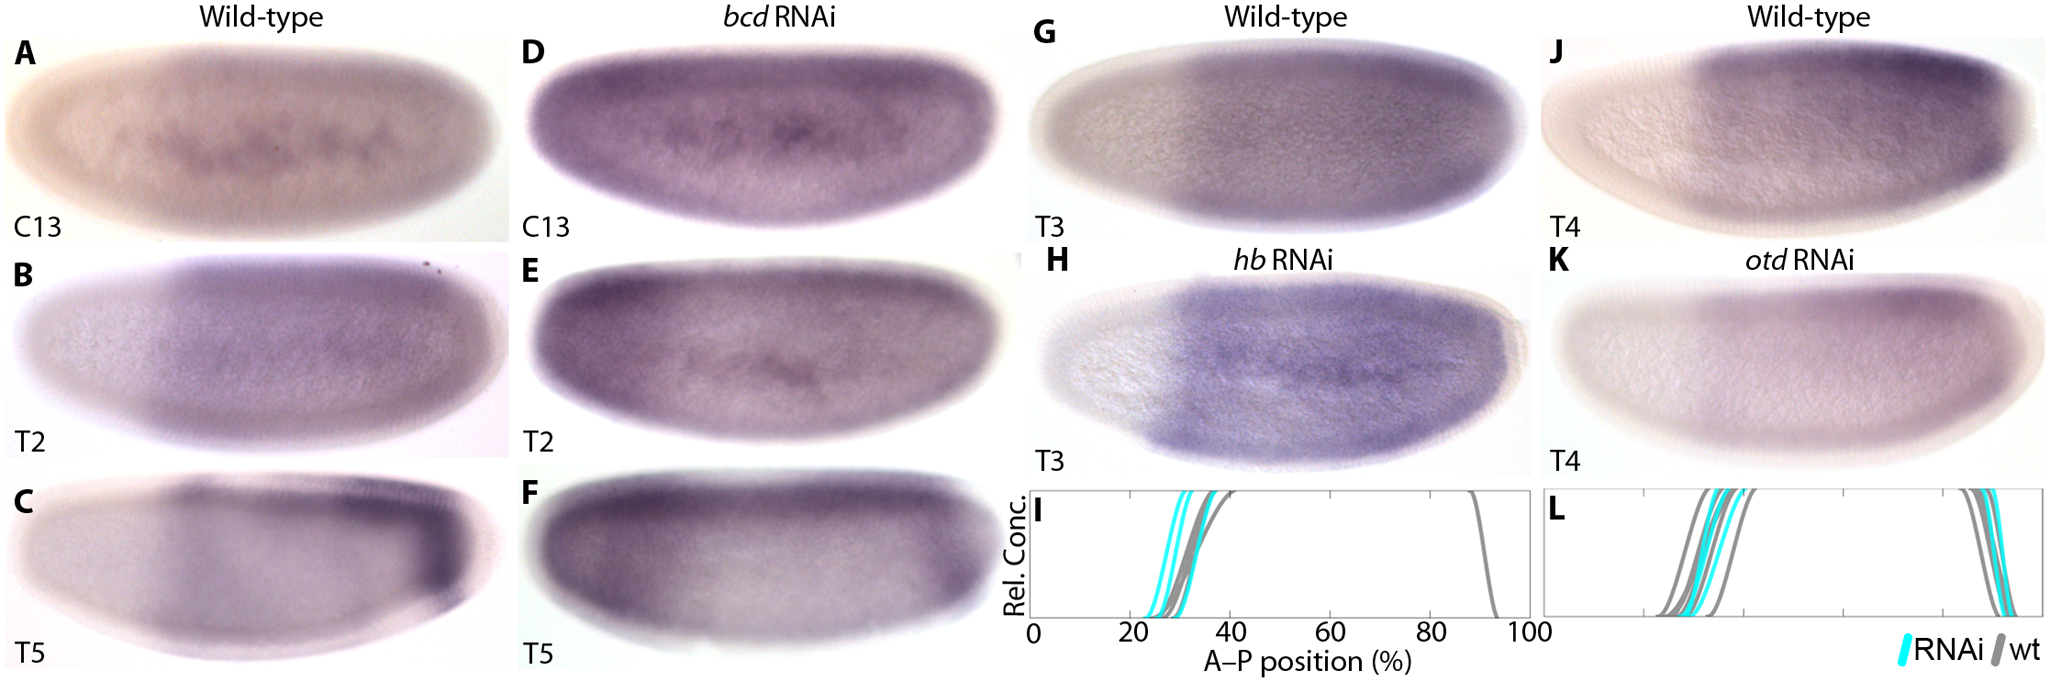 Zygotic <i>cad</i> mRNA expression in wild-type and RNAi-treated embryos.